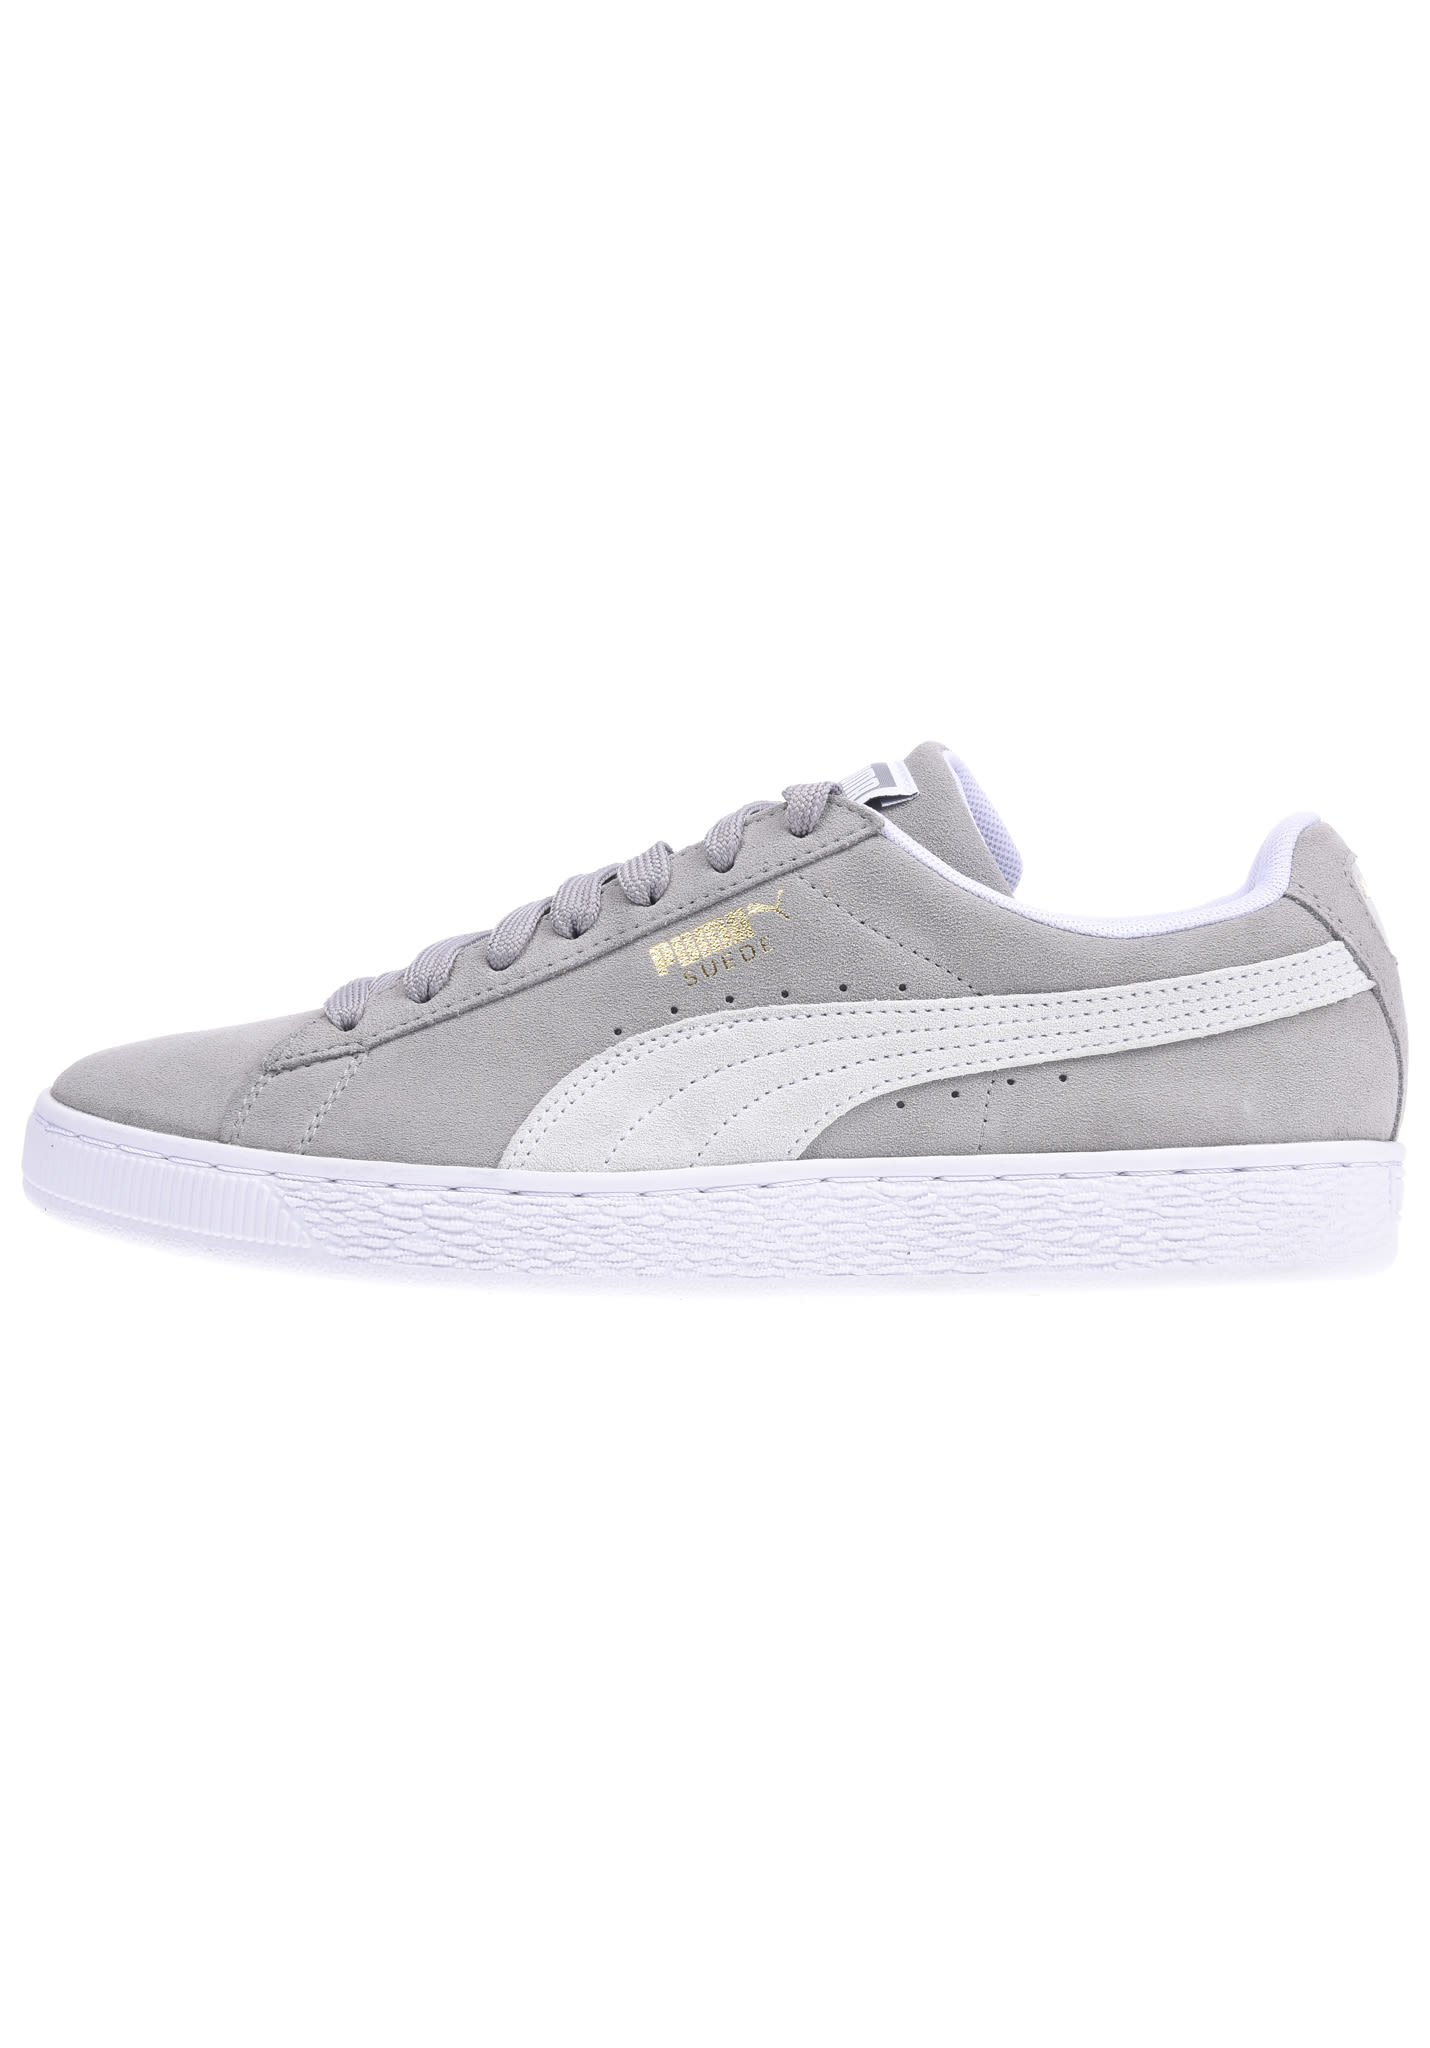 4323e95711b Puma Suede Classic - Sneakers voor Heren - Grijs - Planet Sports